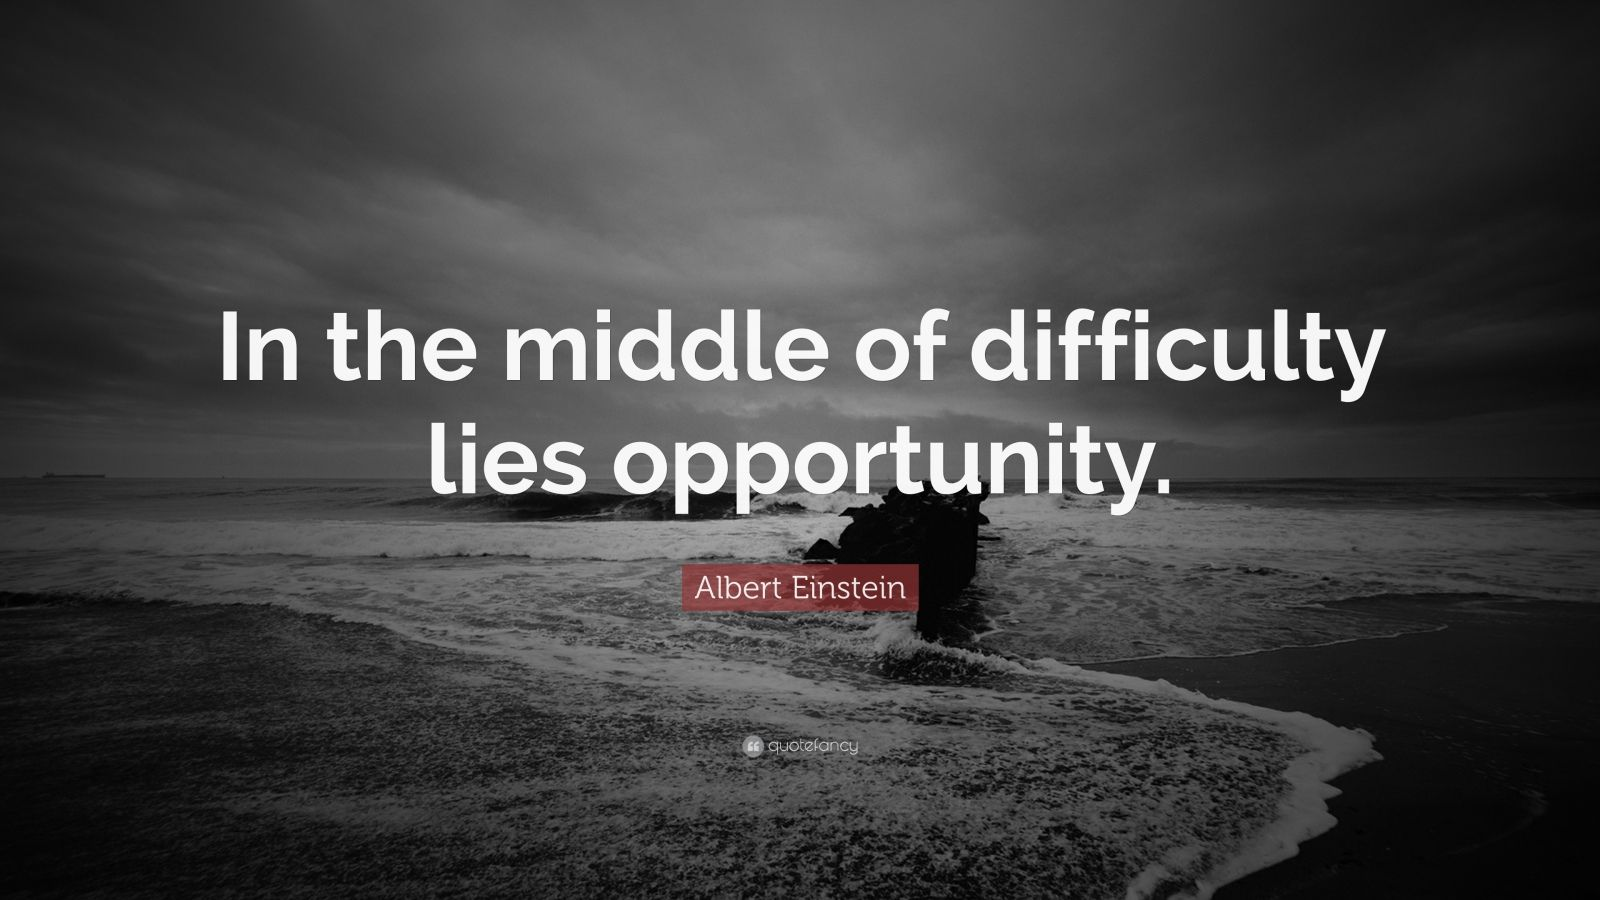 Turning 30 Quotes Wallpapers Albert Einstein Quote In The Middle Of Difficulty Lies